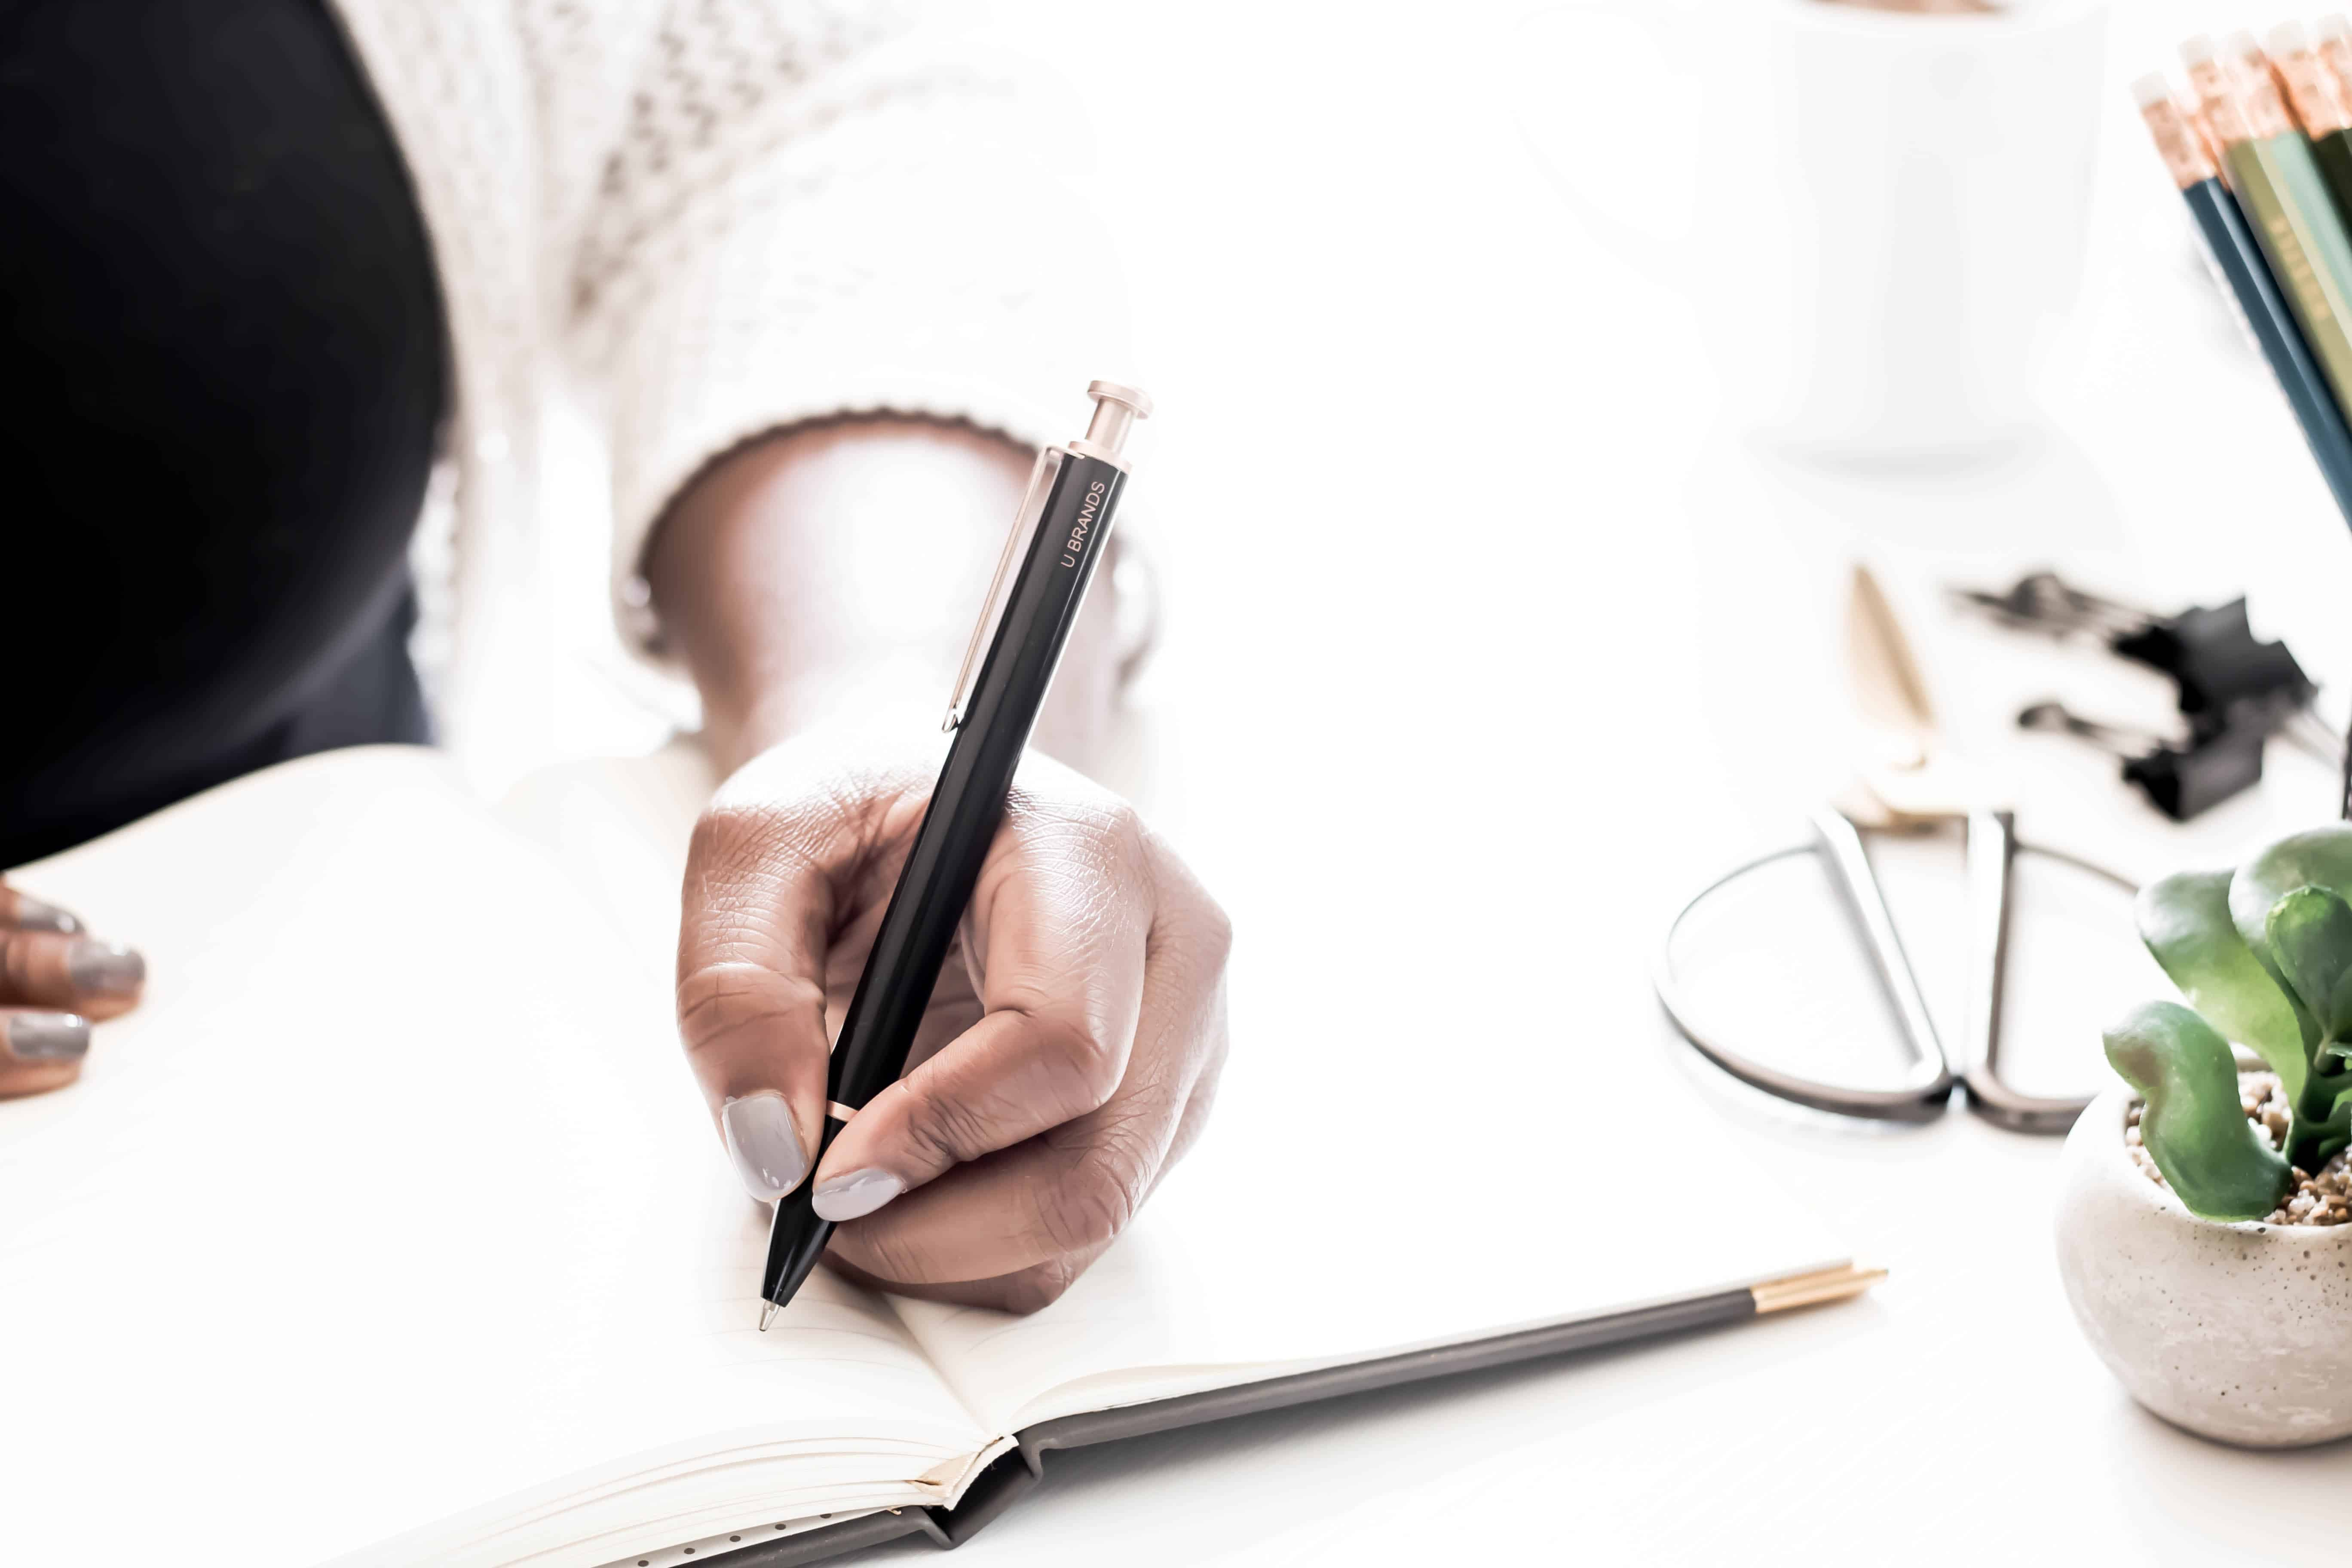 Personal Growth Goals. Woman's arm holding pen writing in notebook